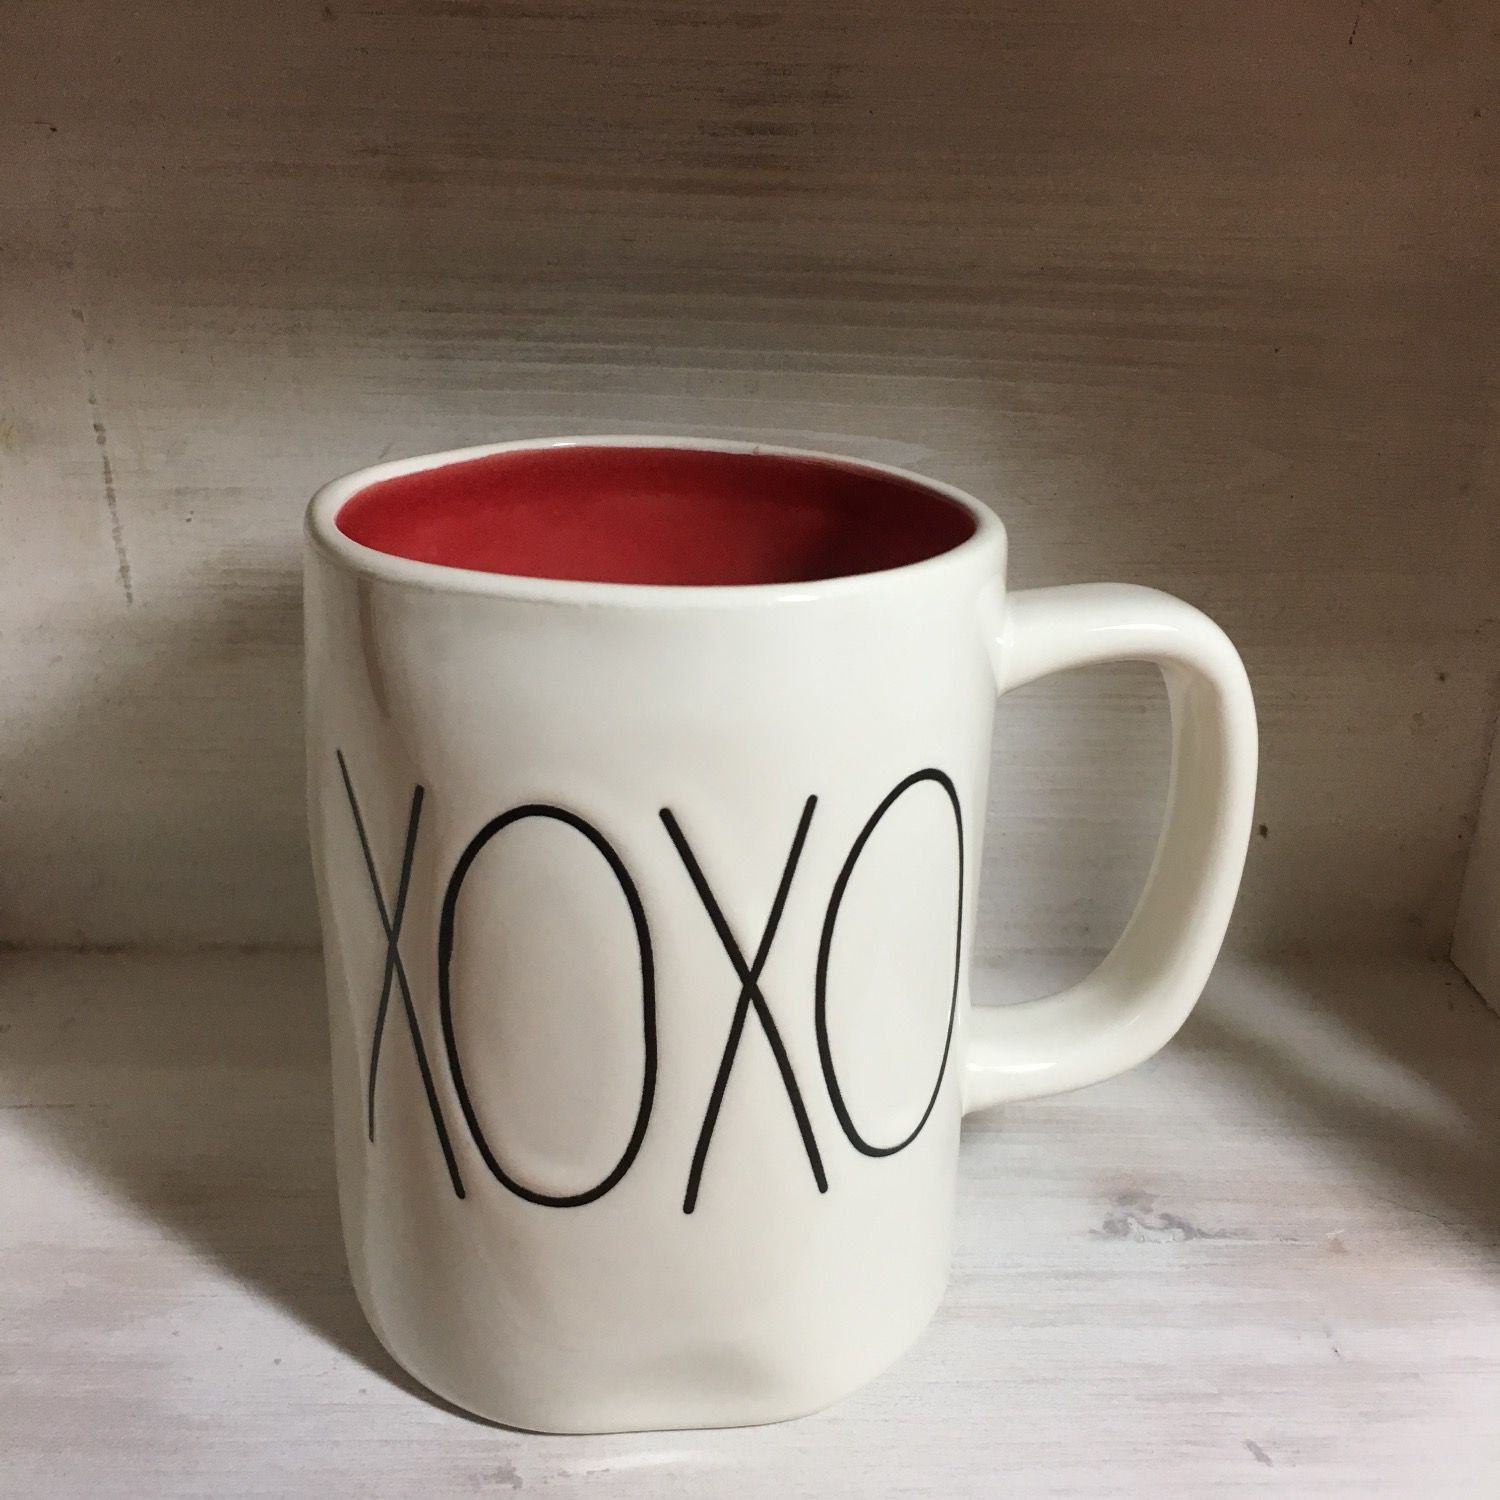 Rae Dunn Xoxo Red Interior Mug Rae Dunn For Sale Pinterest